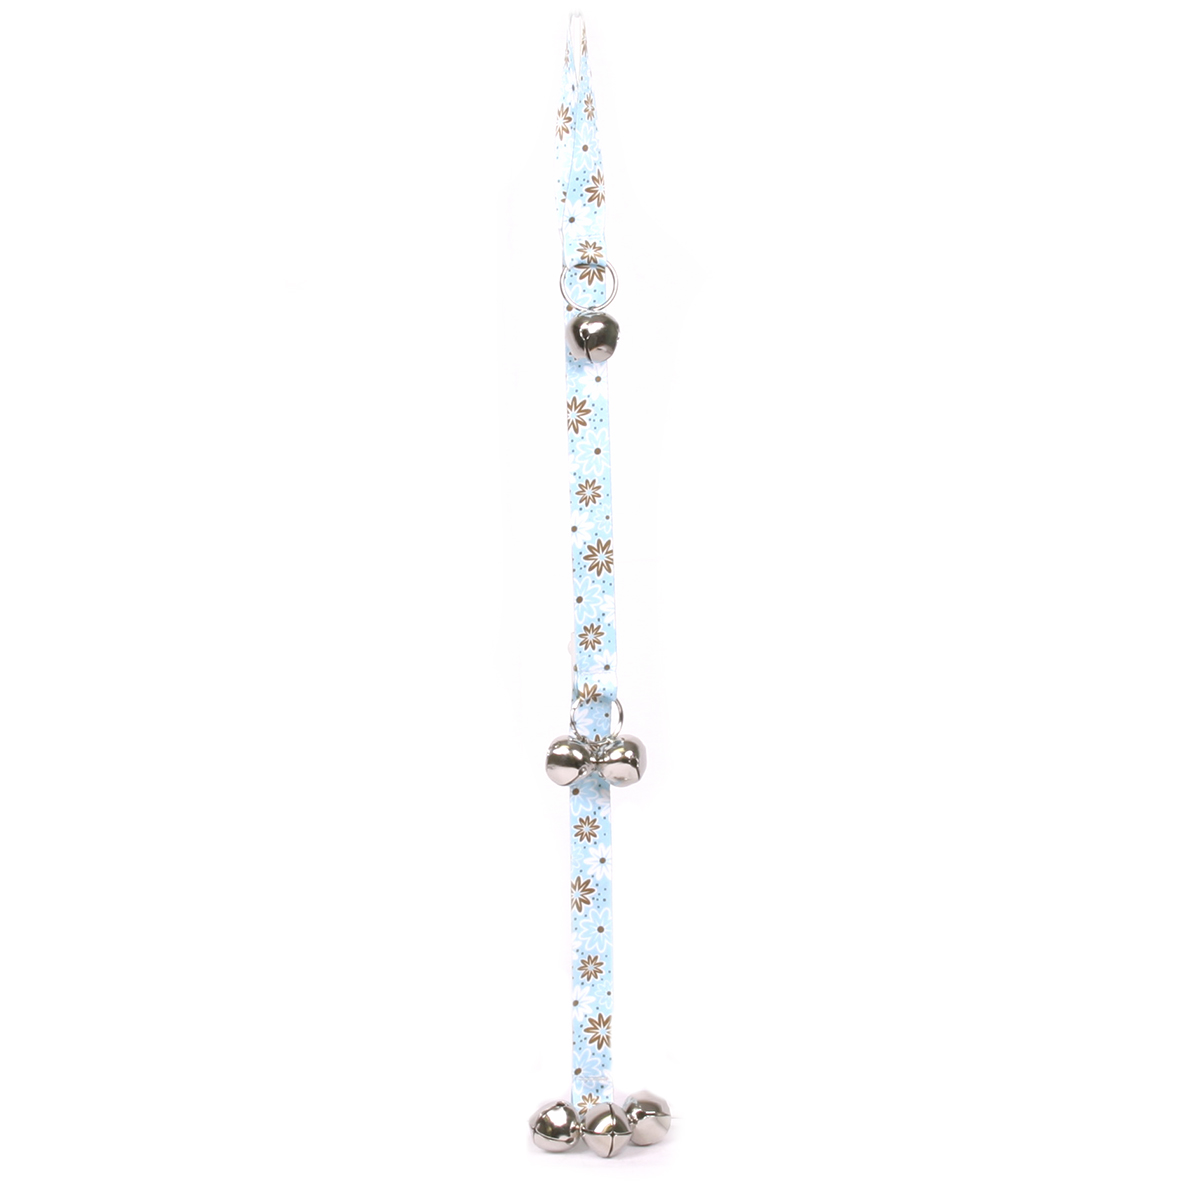 Daisy Chain Blue Ding Dog Bell